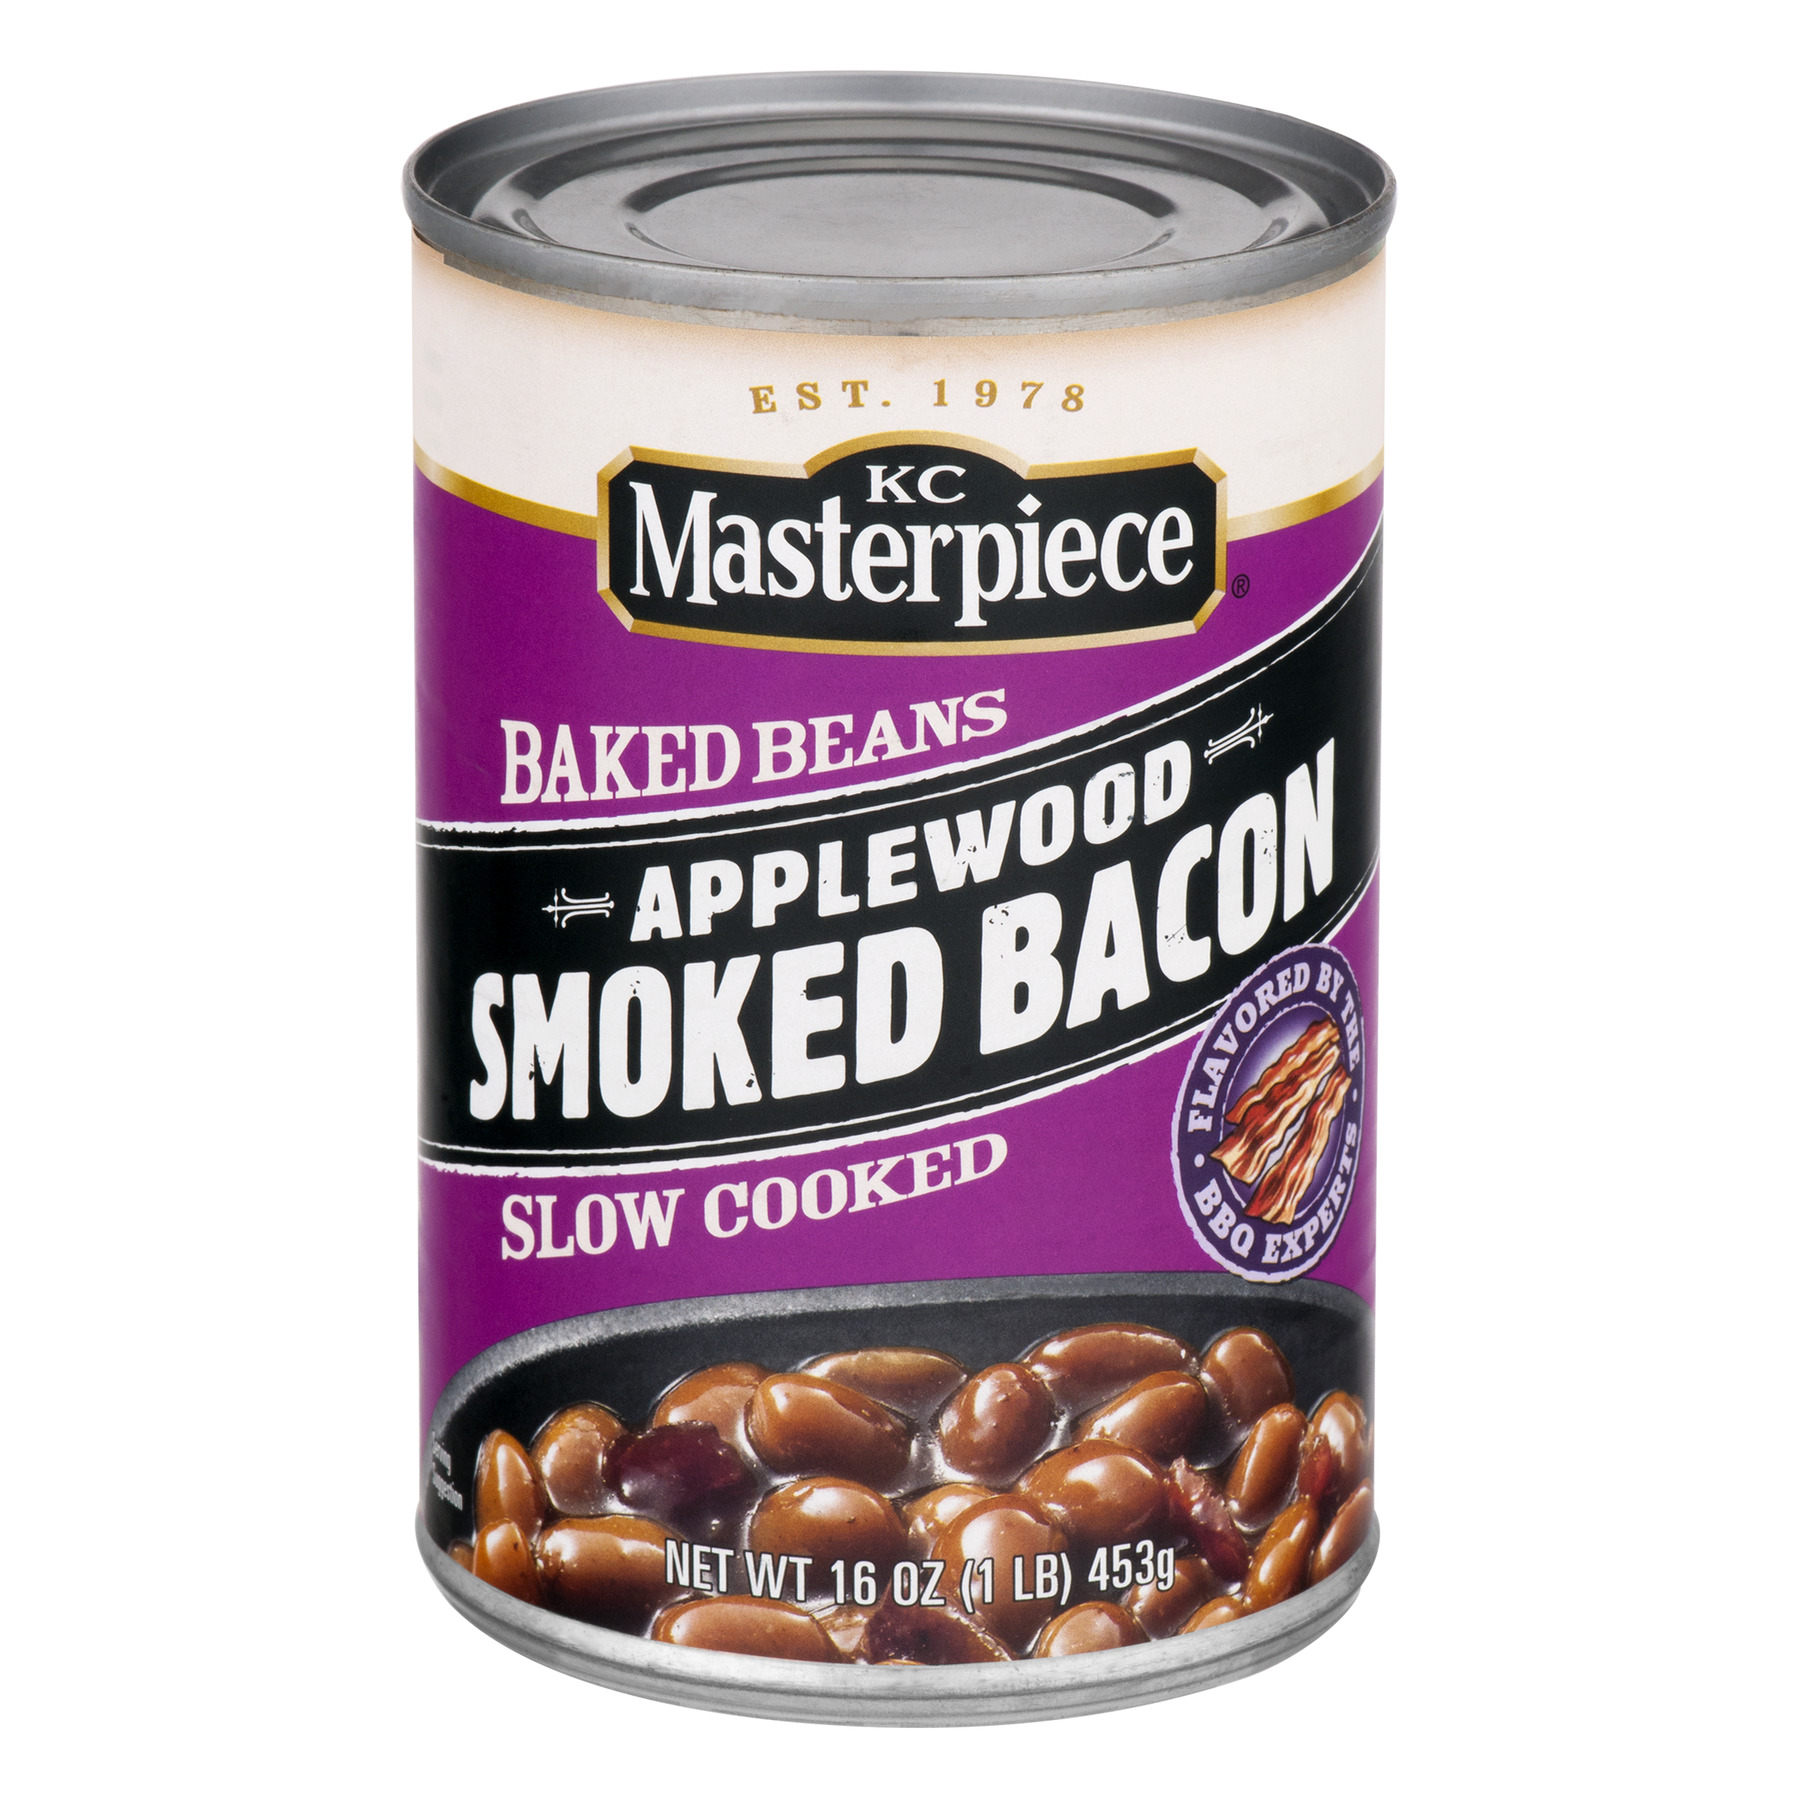 KC Masterpiece Baked Beans Applewood Smoked Bacon, 16.0 OZ